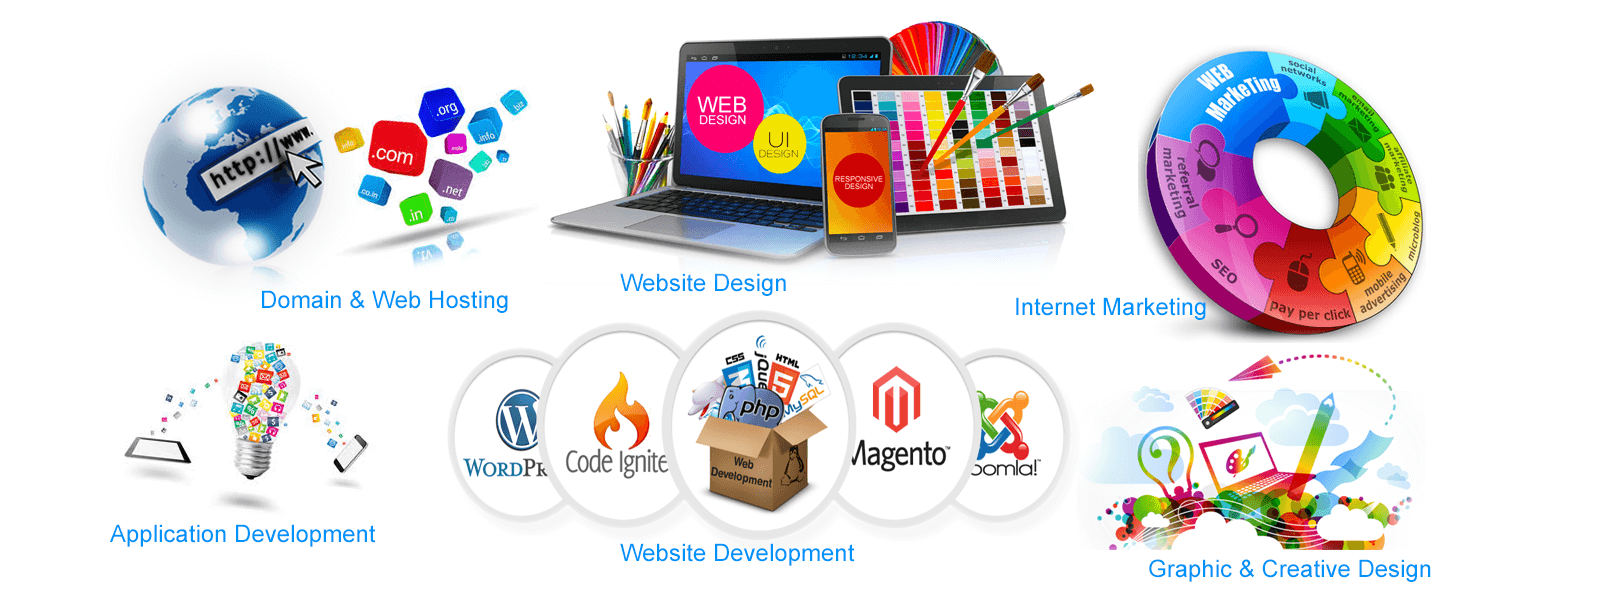 Websitesowner Is Leading Web Development Company In Usa And France We Provide Our Services All O Website Design Company Web Design Company Web Design Services